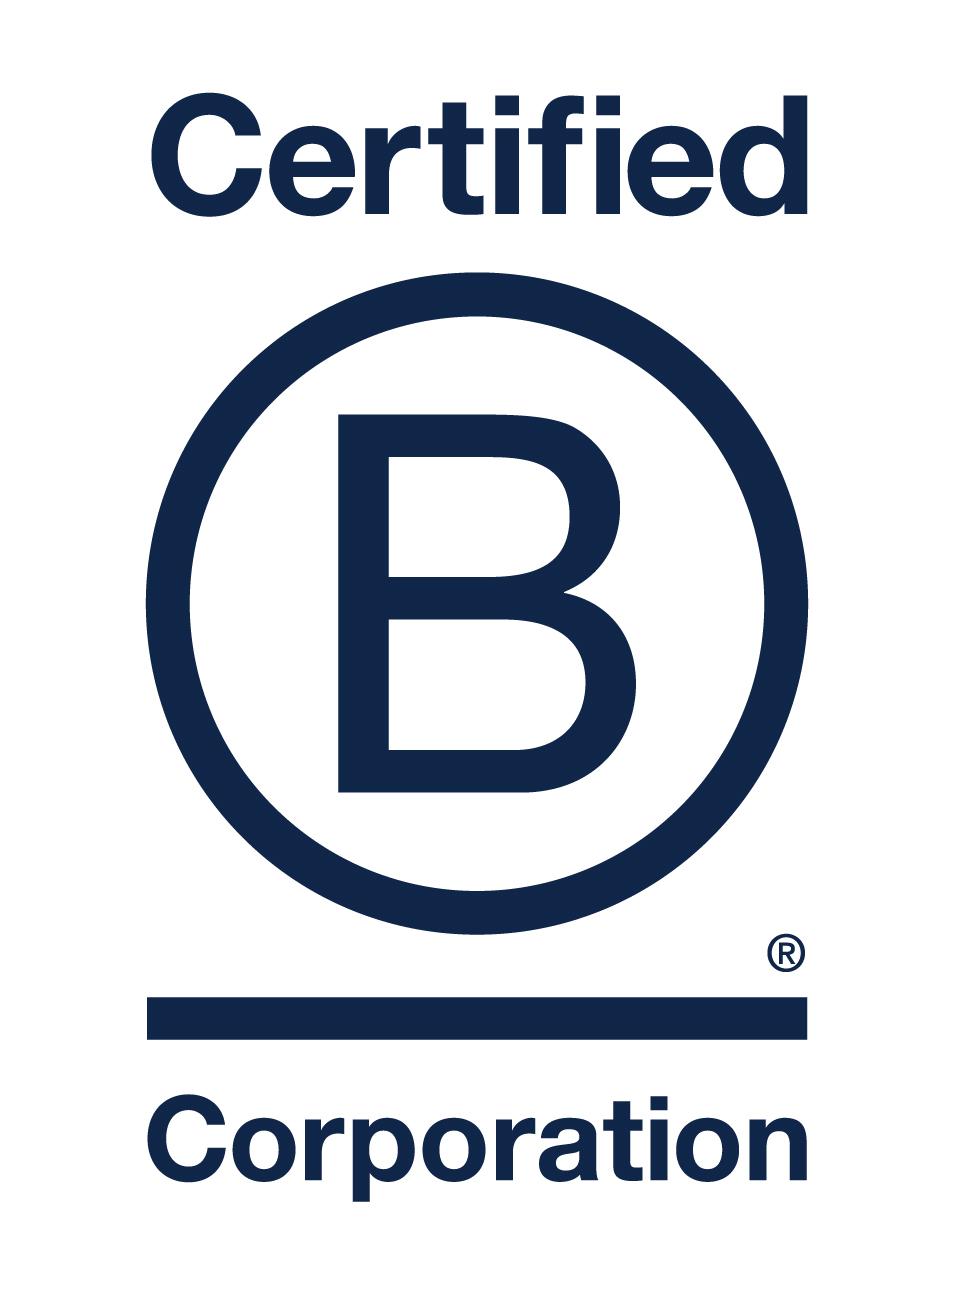 Global Prairie is a certified benefit corporation or B-Corp